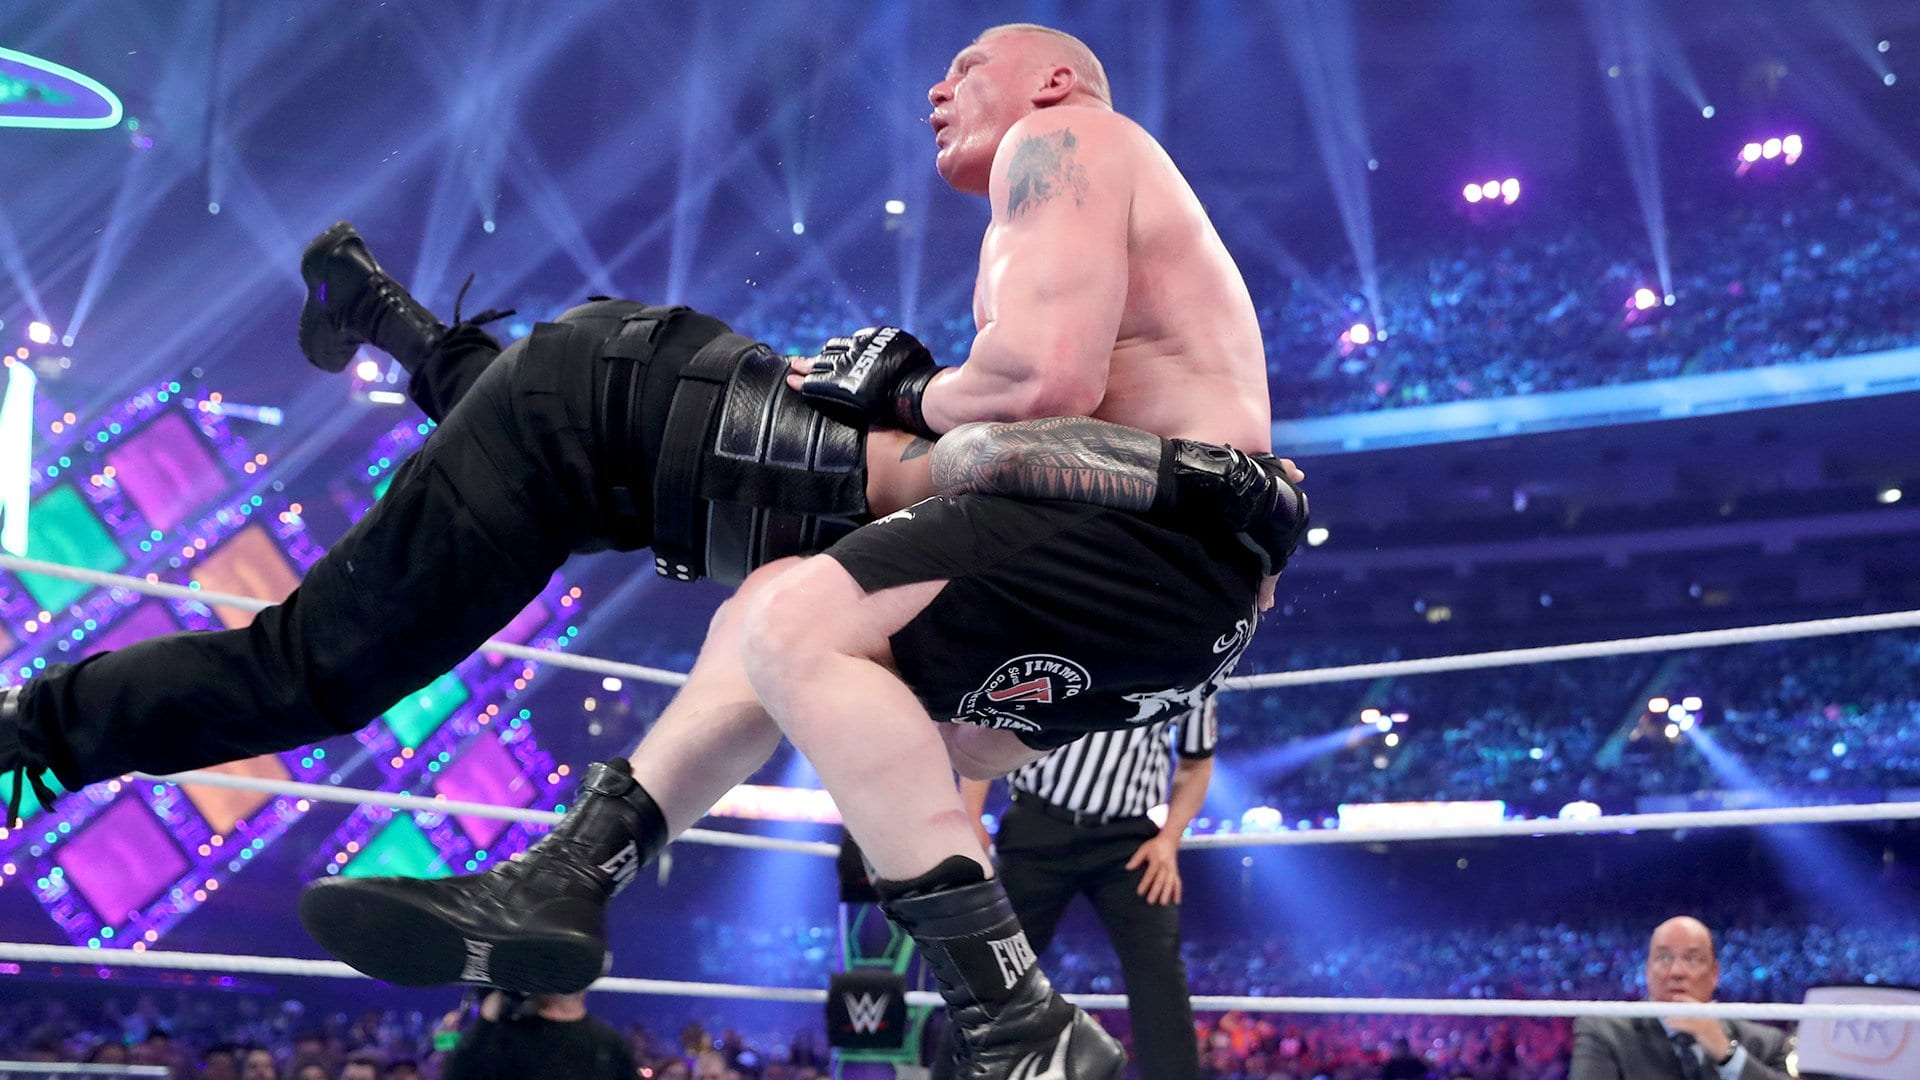 original finish to brock lesnar roman reigns match revealed